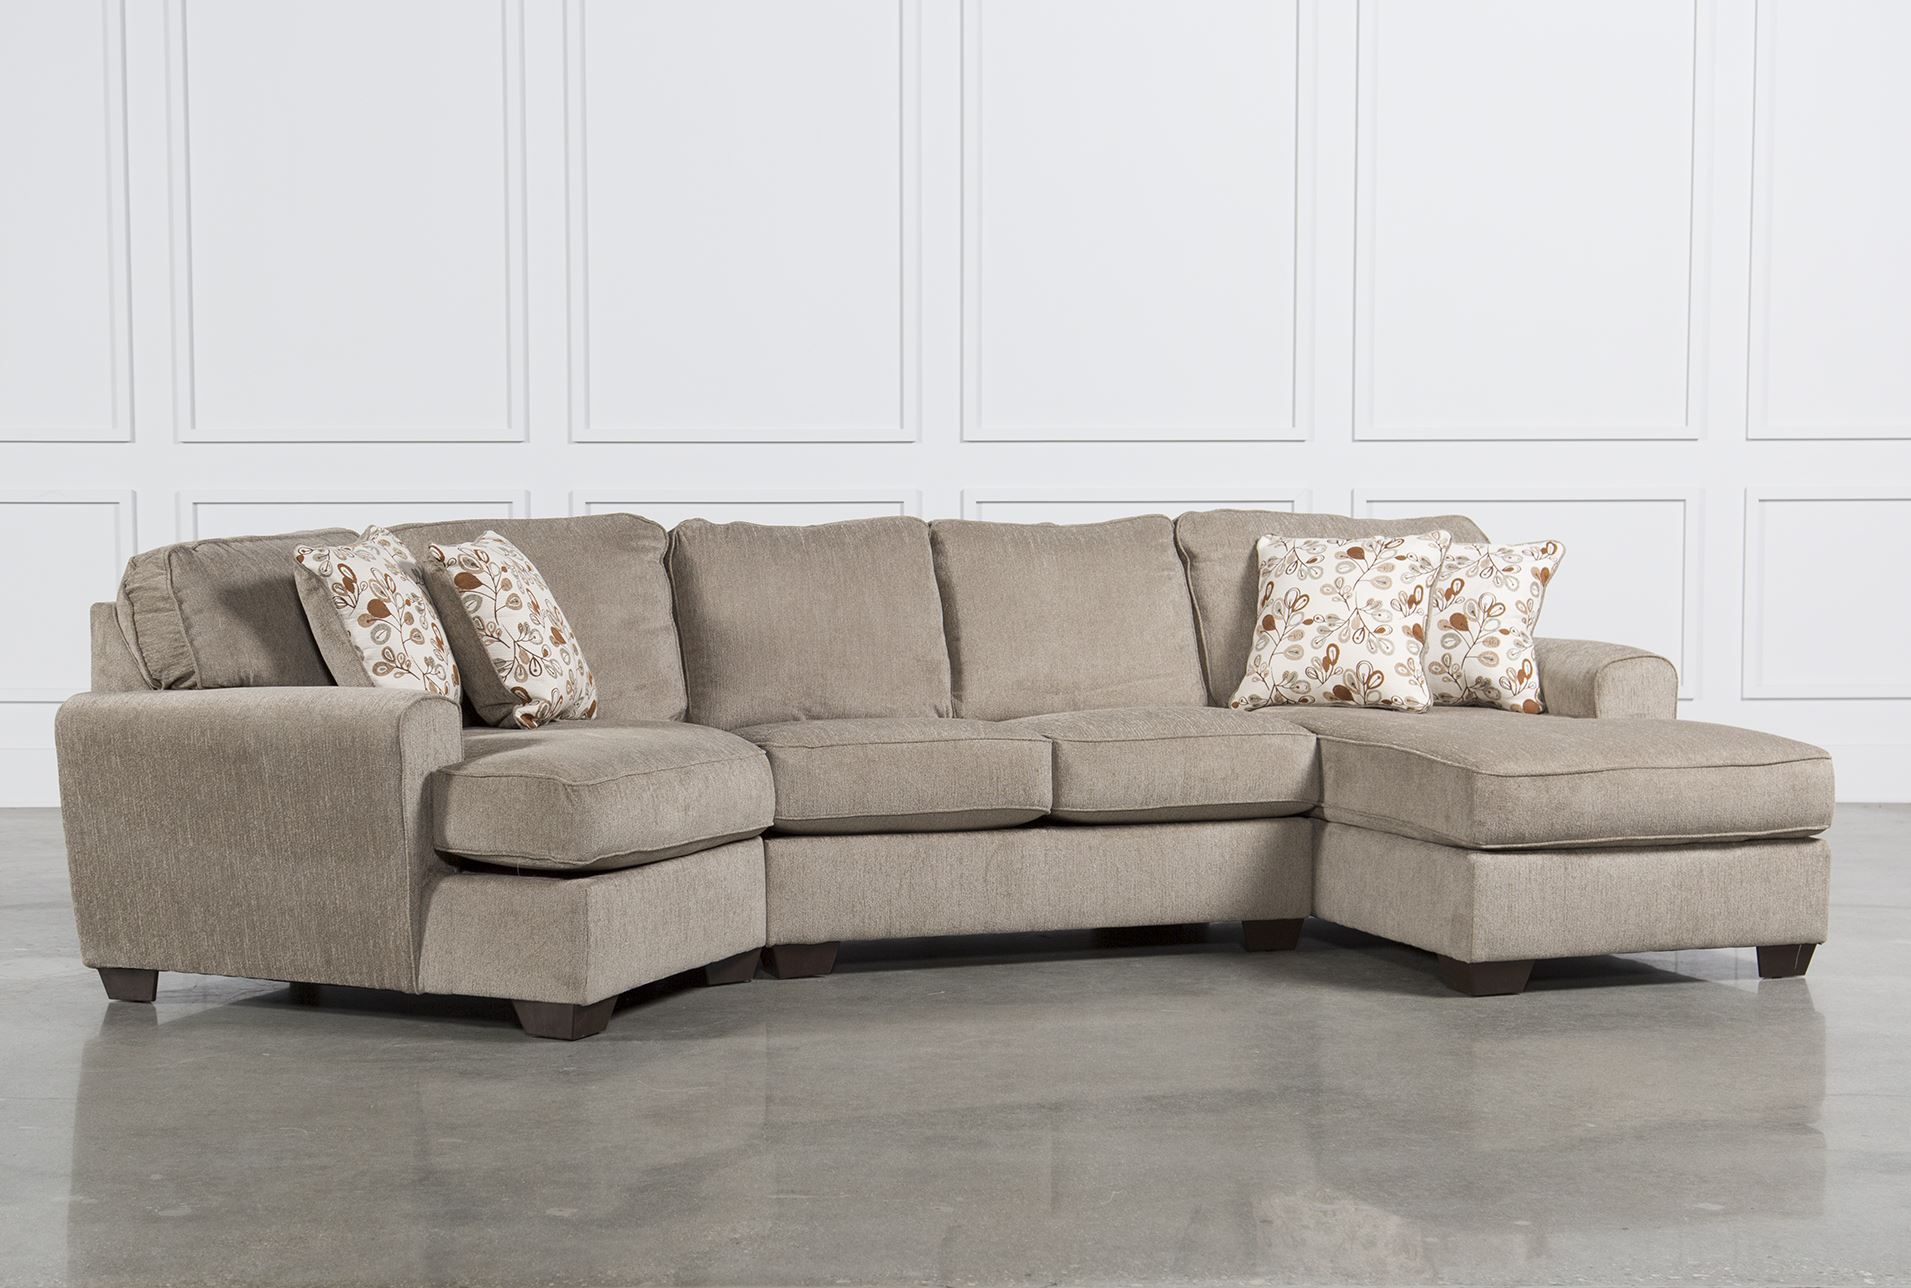 Patola park 3 piece cuddler sectional w raf cornr chaise for Sectional sofa with chaise and cuddler